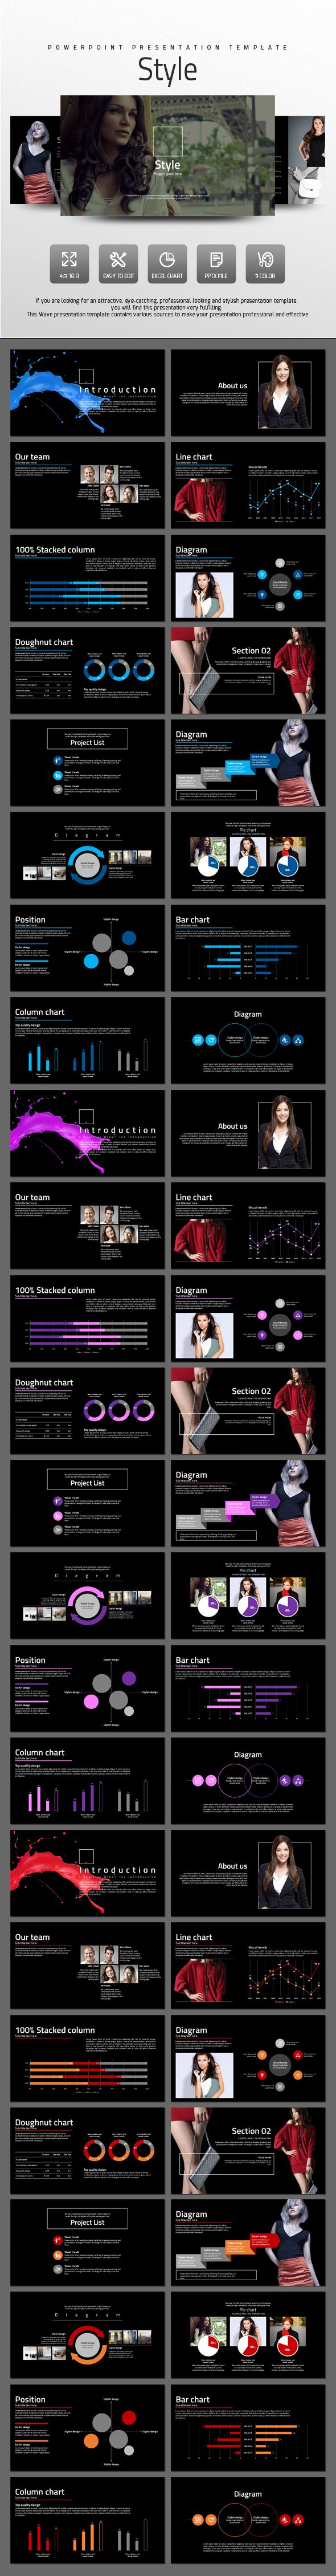 Style - PowerPoint Presentation Template #slides Download: http://graphicriver.net/item/style/14449901?ref=ksioks